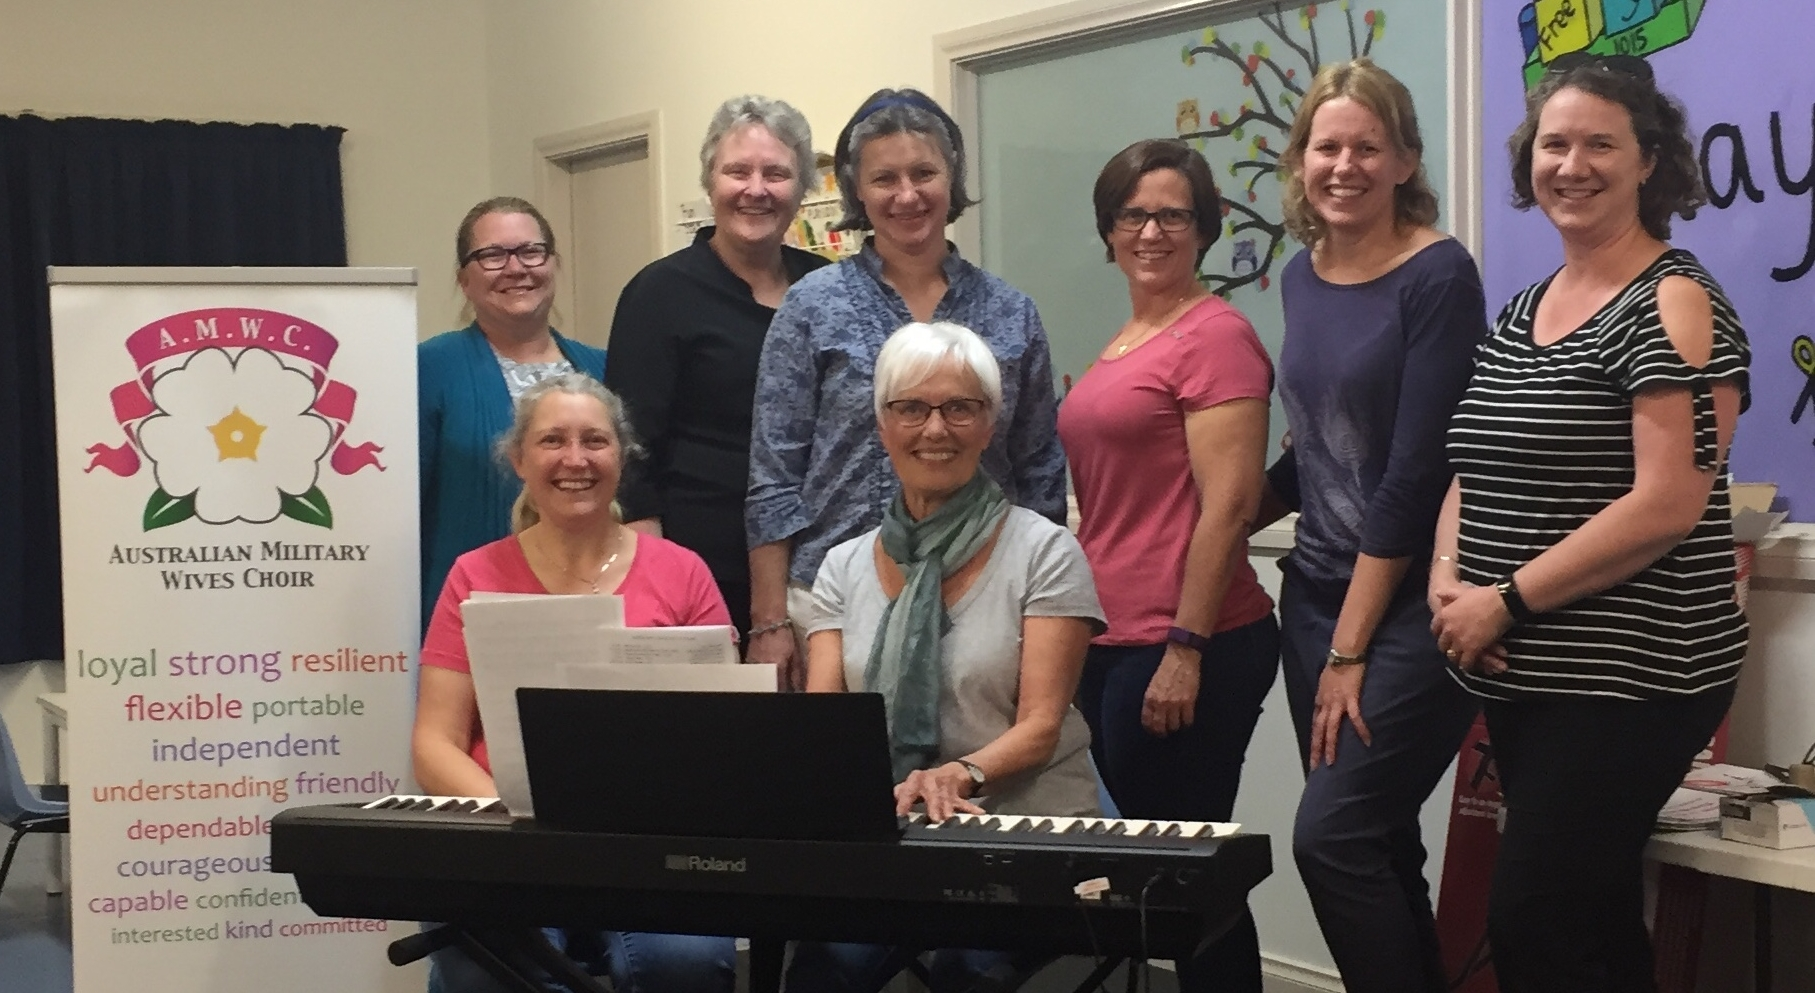 AMWChoir Wagga Wagga are very excited to receive a dedicated piano and music stool which will make rehearsing and accompanying much easier.